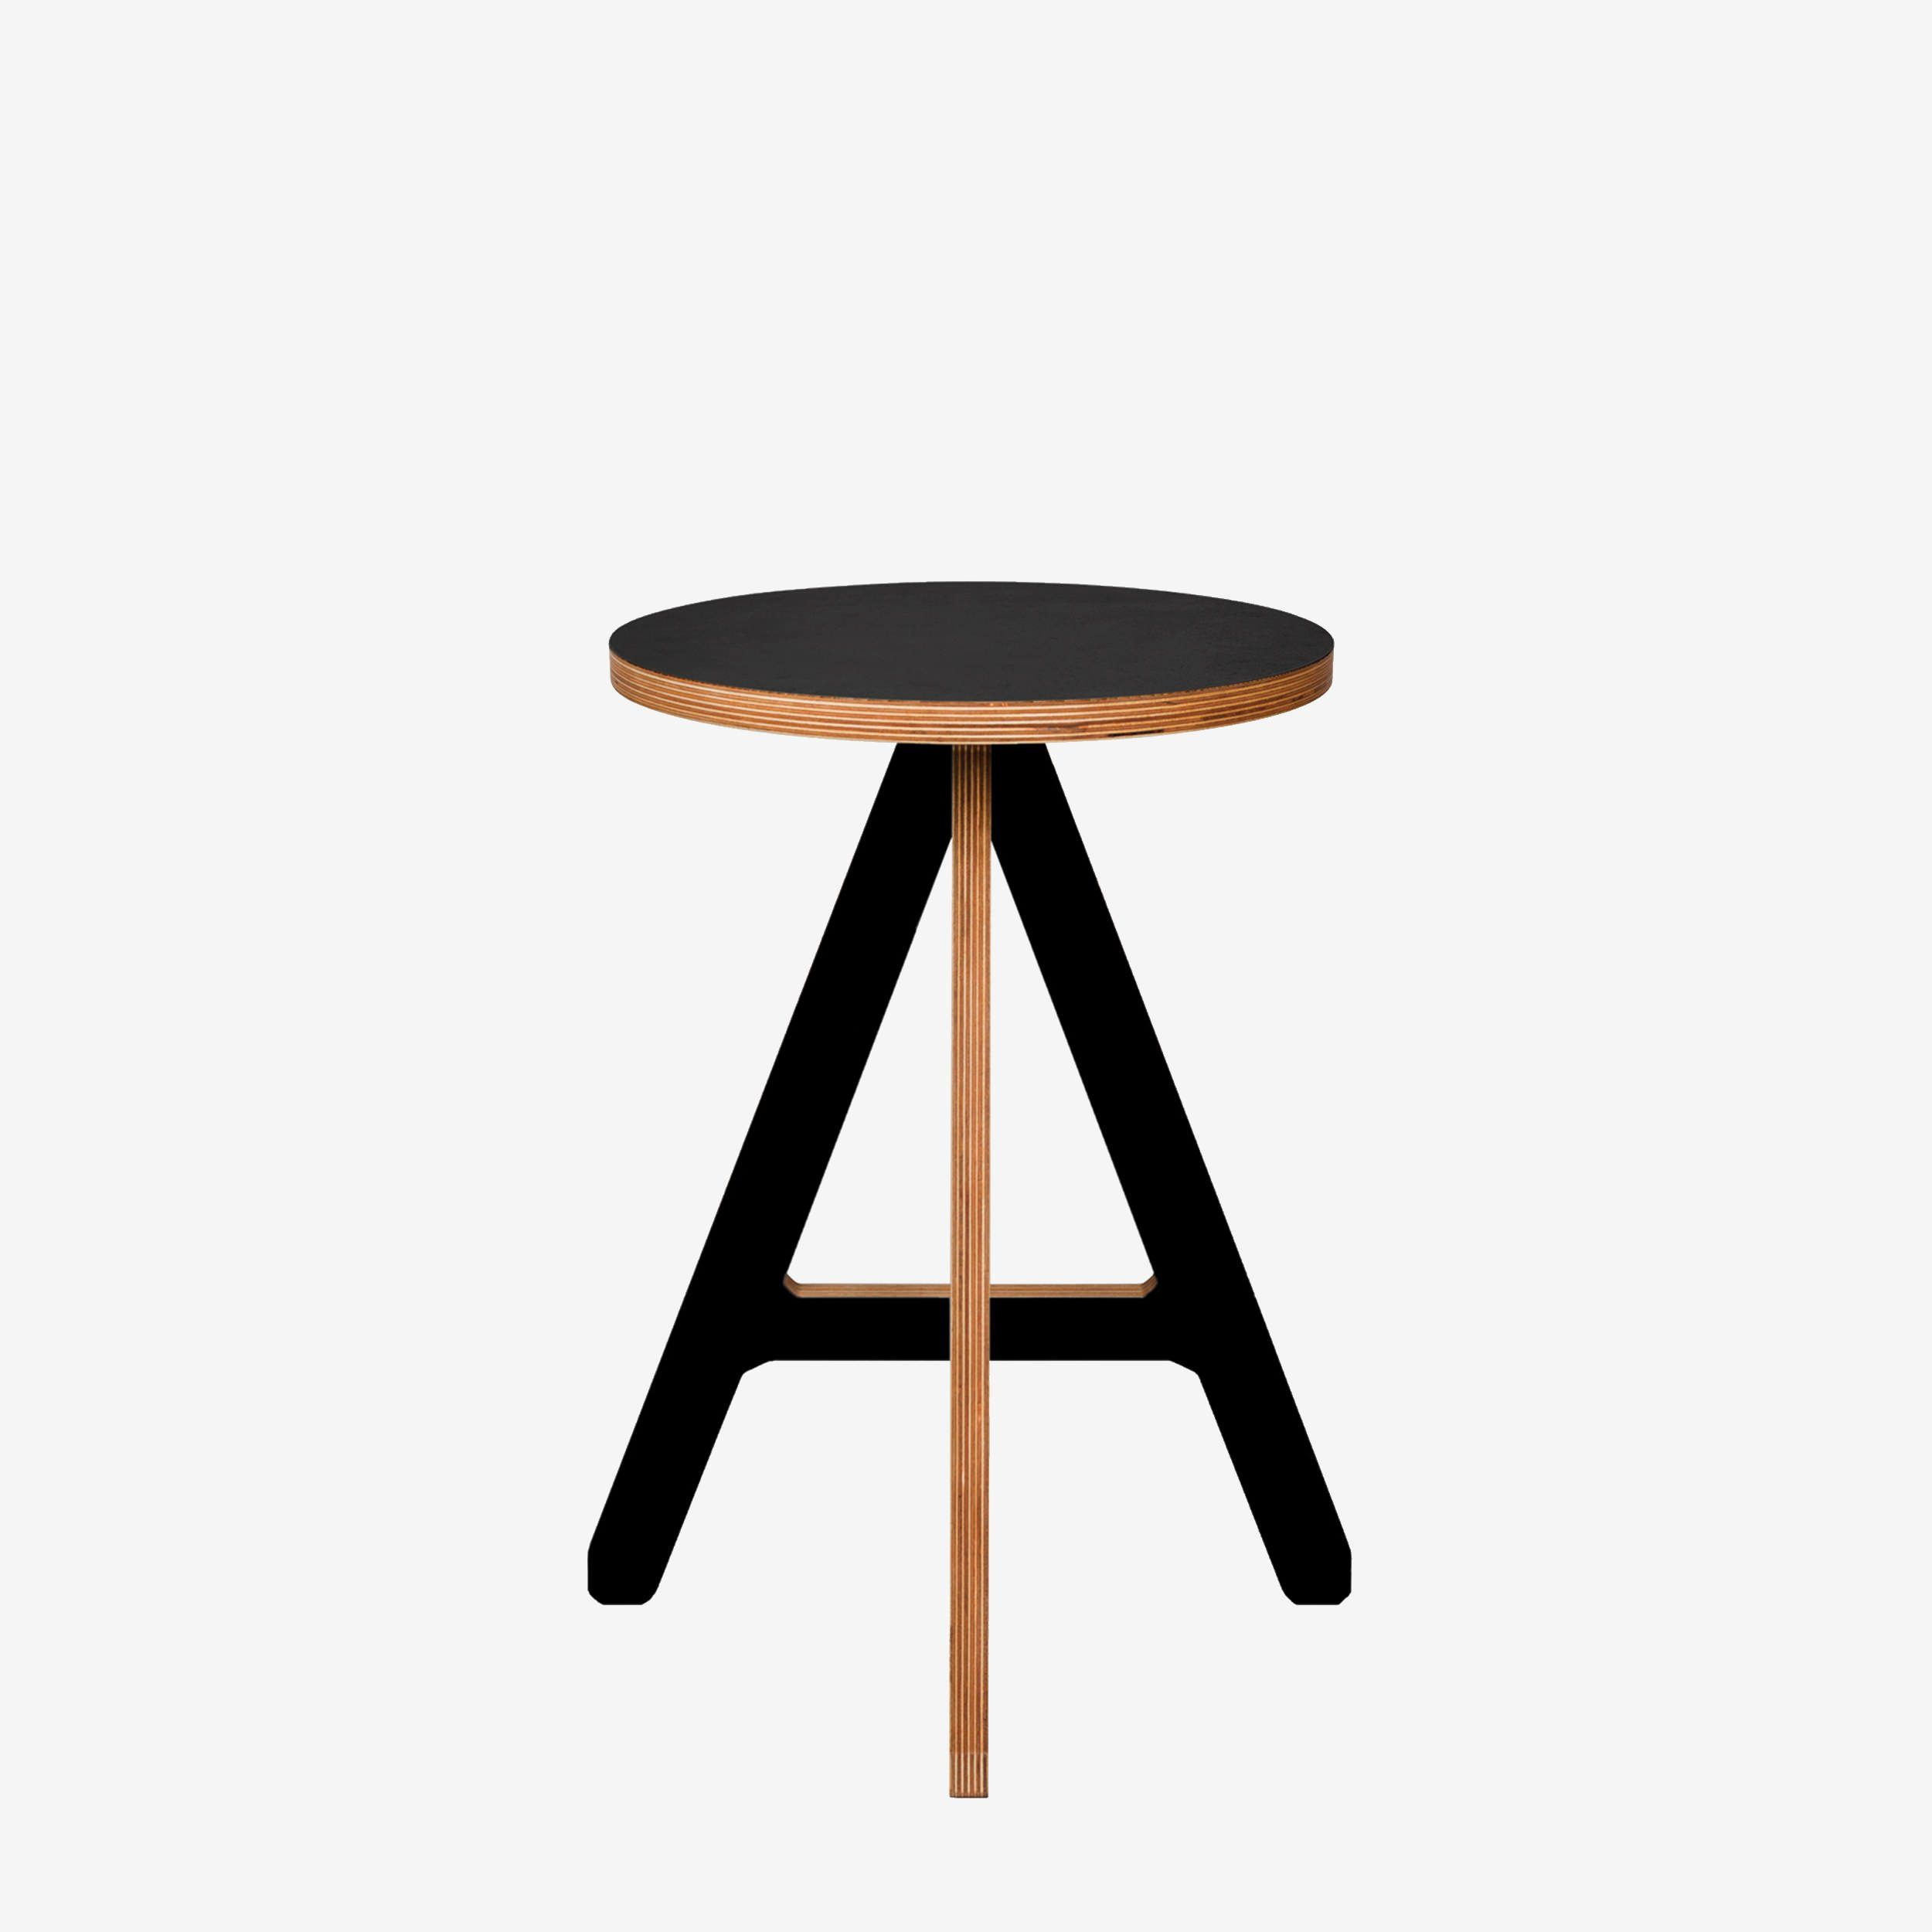 Enjoyable Modern Wood Stool A Stool British Design Byalex Caraccident5 Cool Chair Designs And Ideas Caraccident5Info